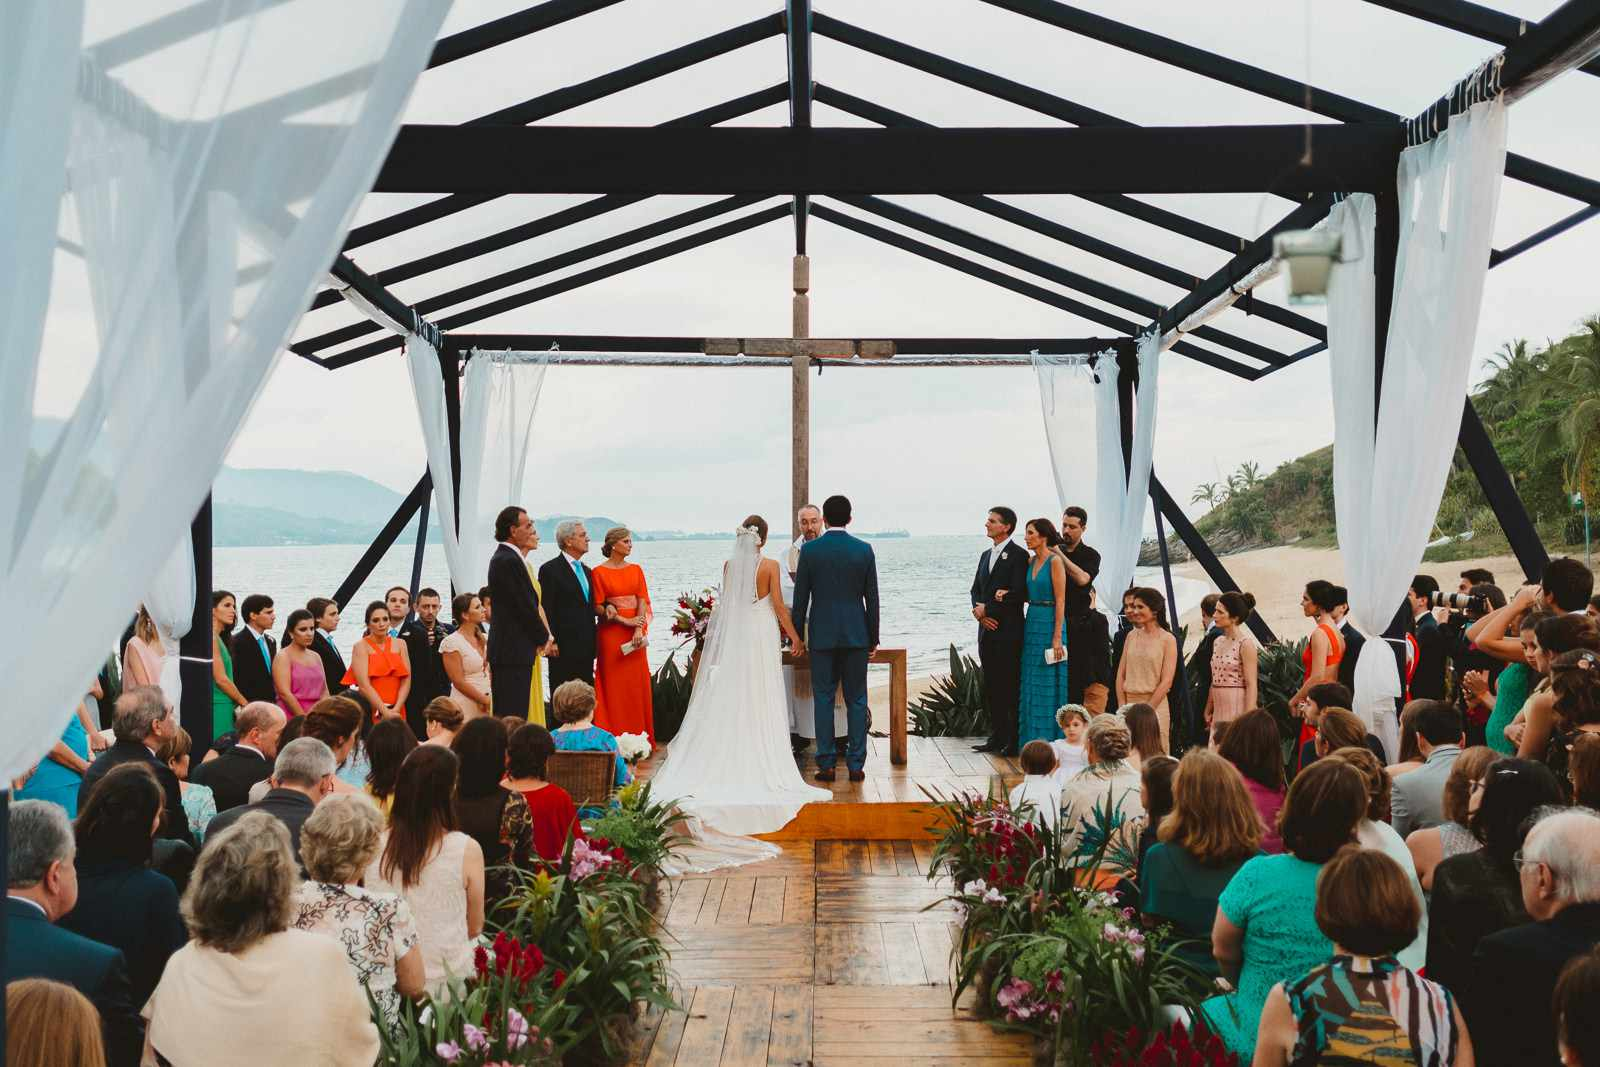 Brazilian Wedding Traditions Every Bride Could Use